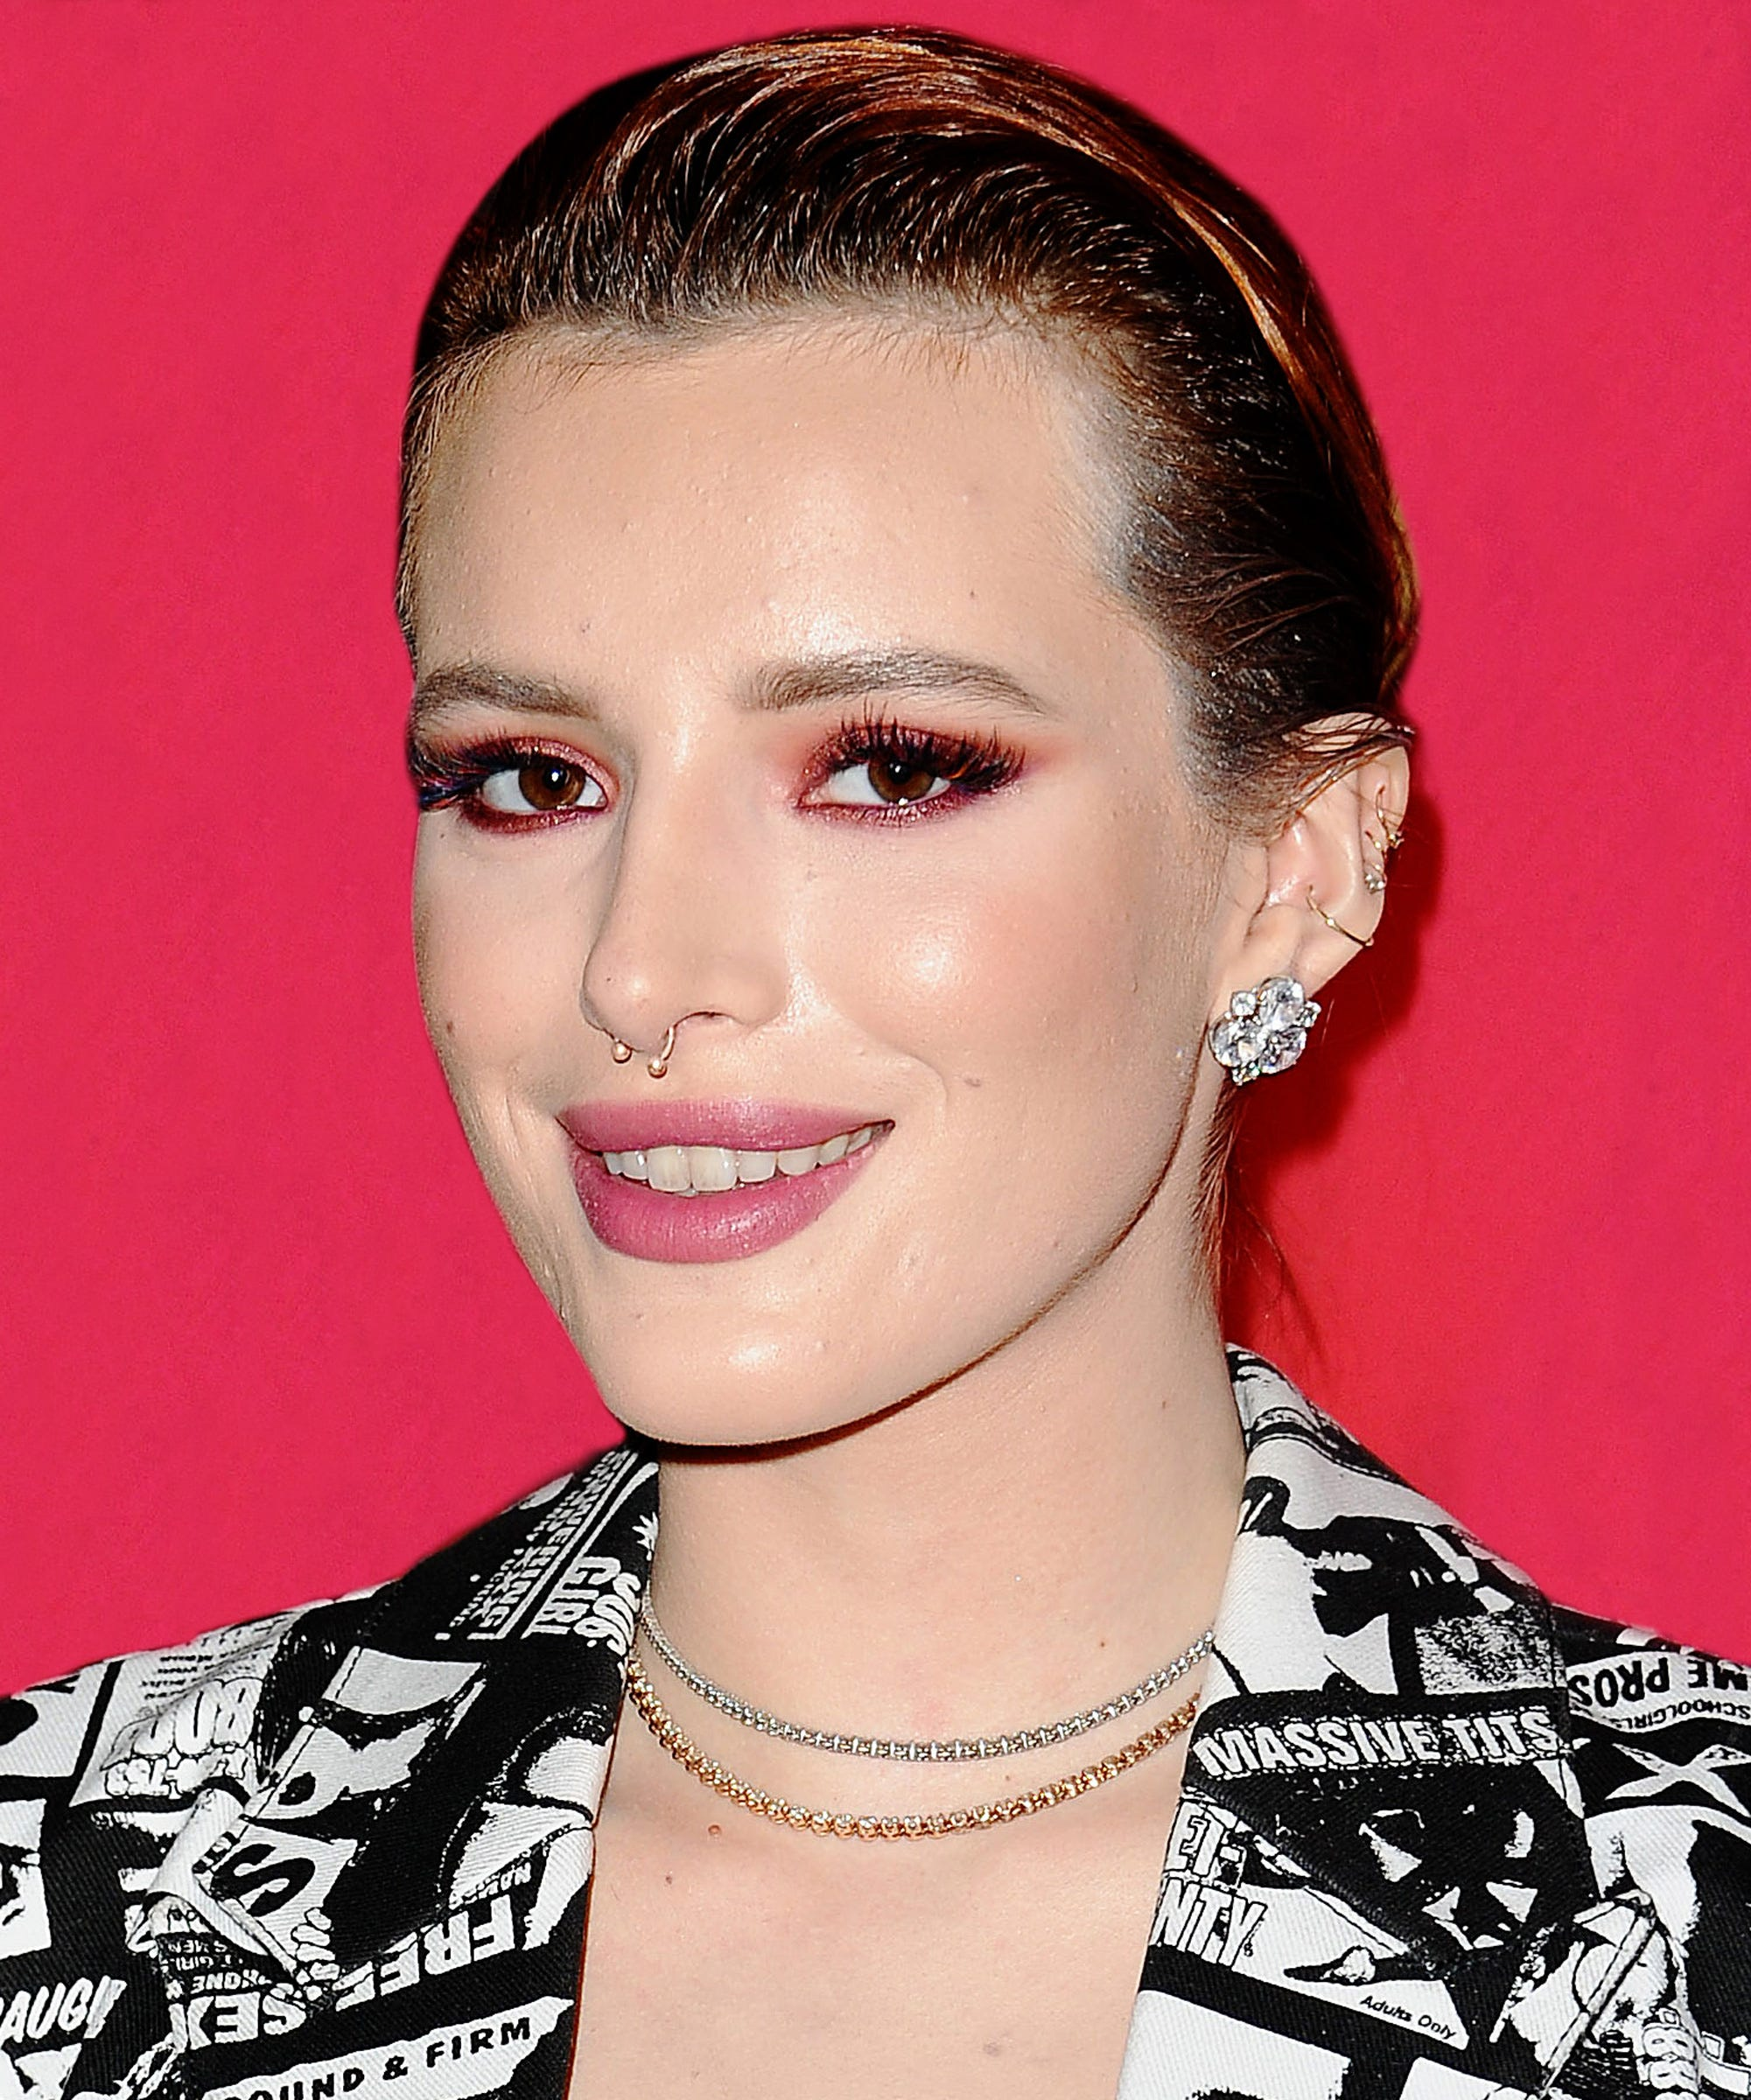 Discussion on this topic: Bella Thorne Just Debuted the Craziest Elbow , bella-thorne-just-debuted-the-craziest-elbow/